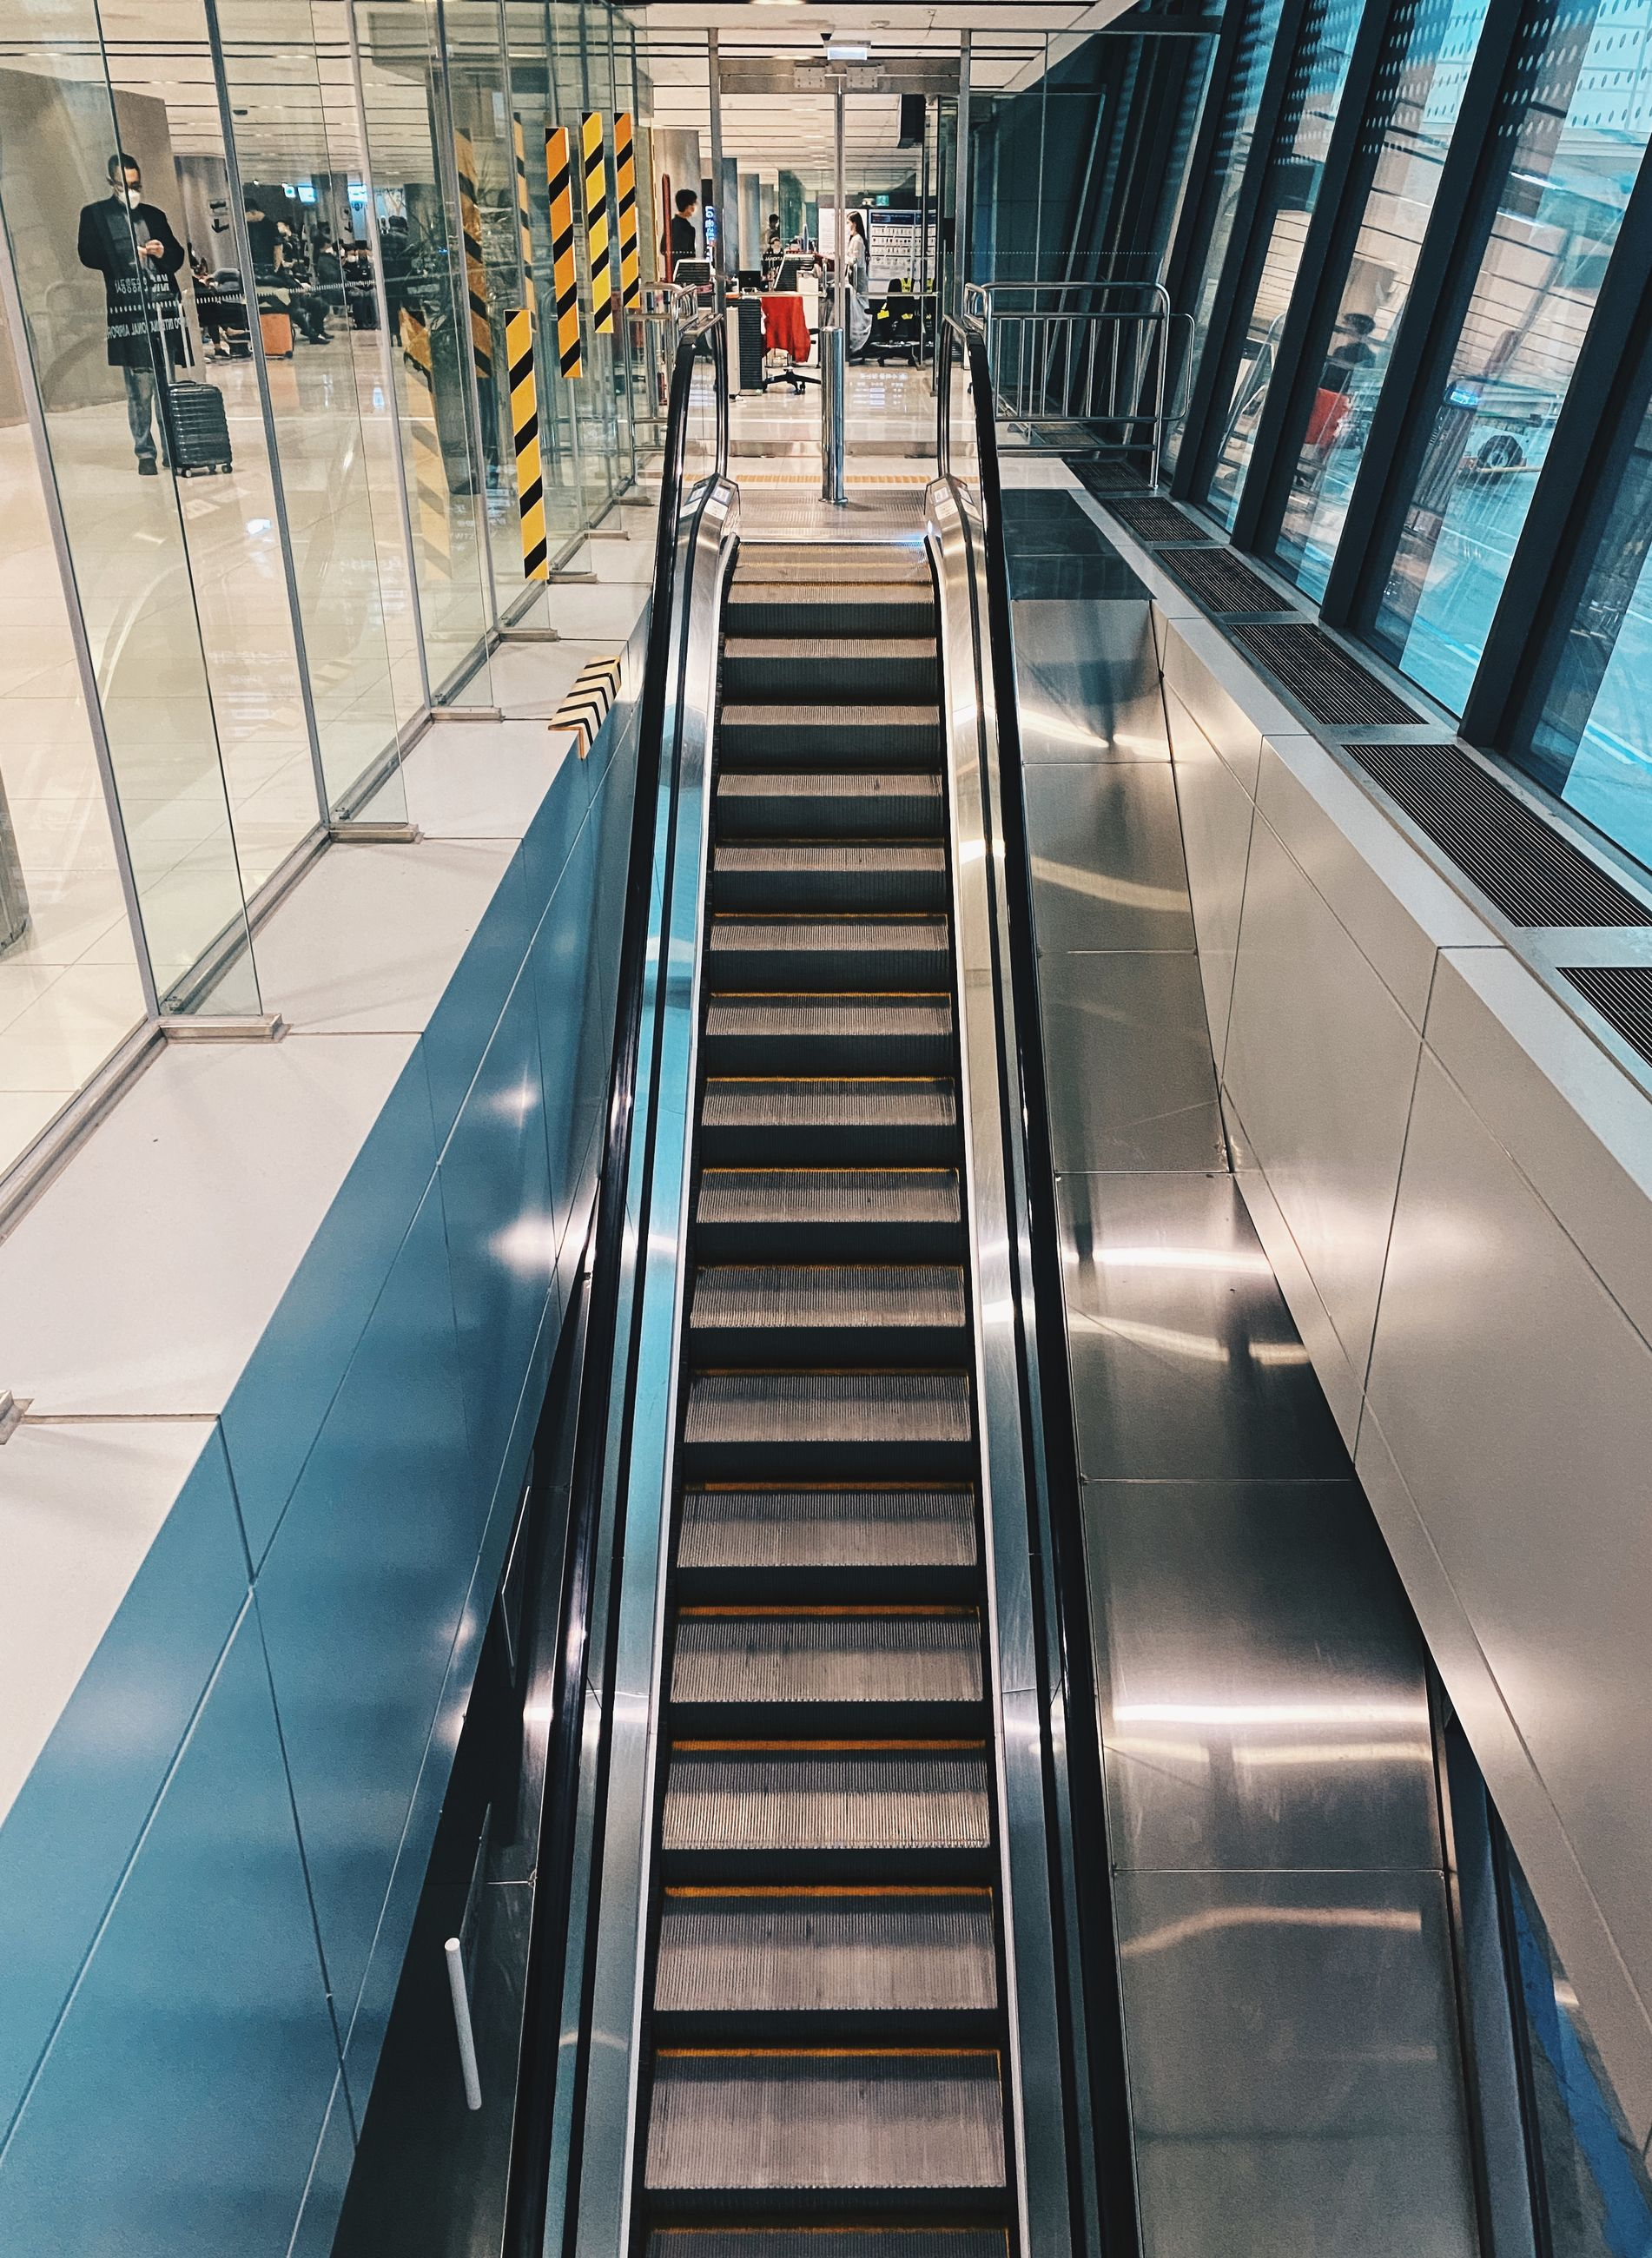 escalator, architecture, convenience, indoors, transportation, transport, technology, staircase, futuristic, built structure, railing, group of people, travel, public transport, adult, steps and staircases, moving walkway, men, the way forward, building, high angle view, shopping mall, motion, women, city, on the move, subway station, business, mode of transportation, airport, lifestyles, walking, city life